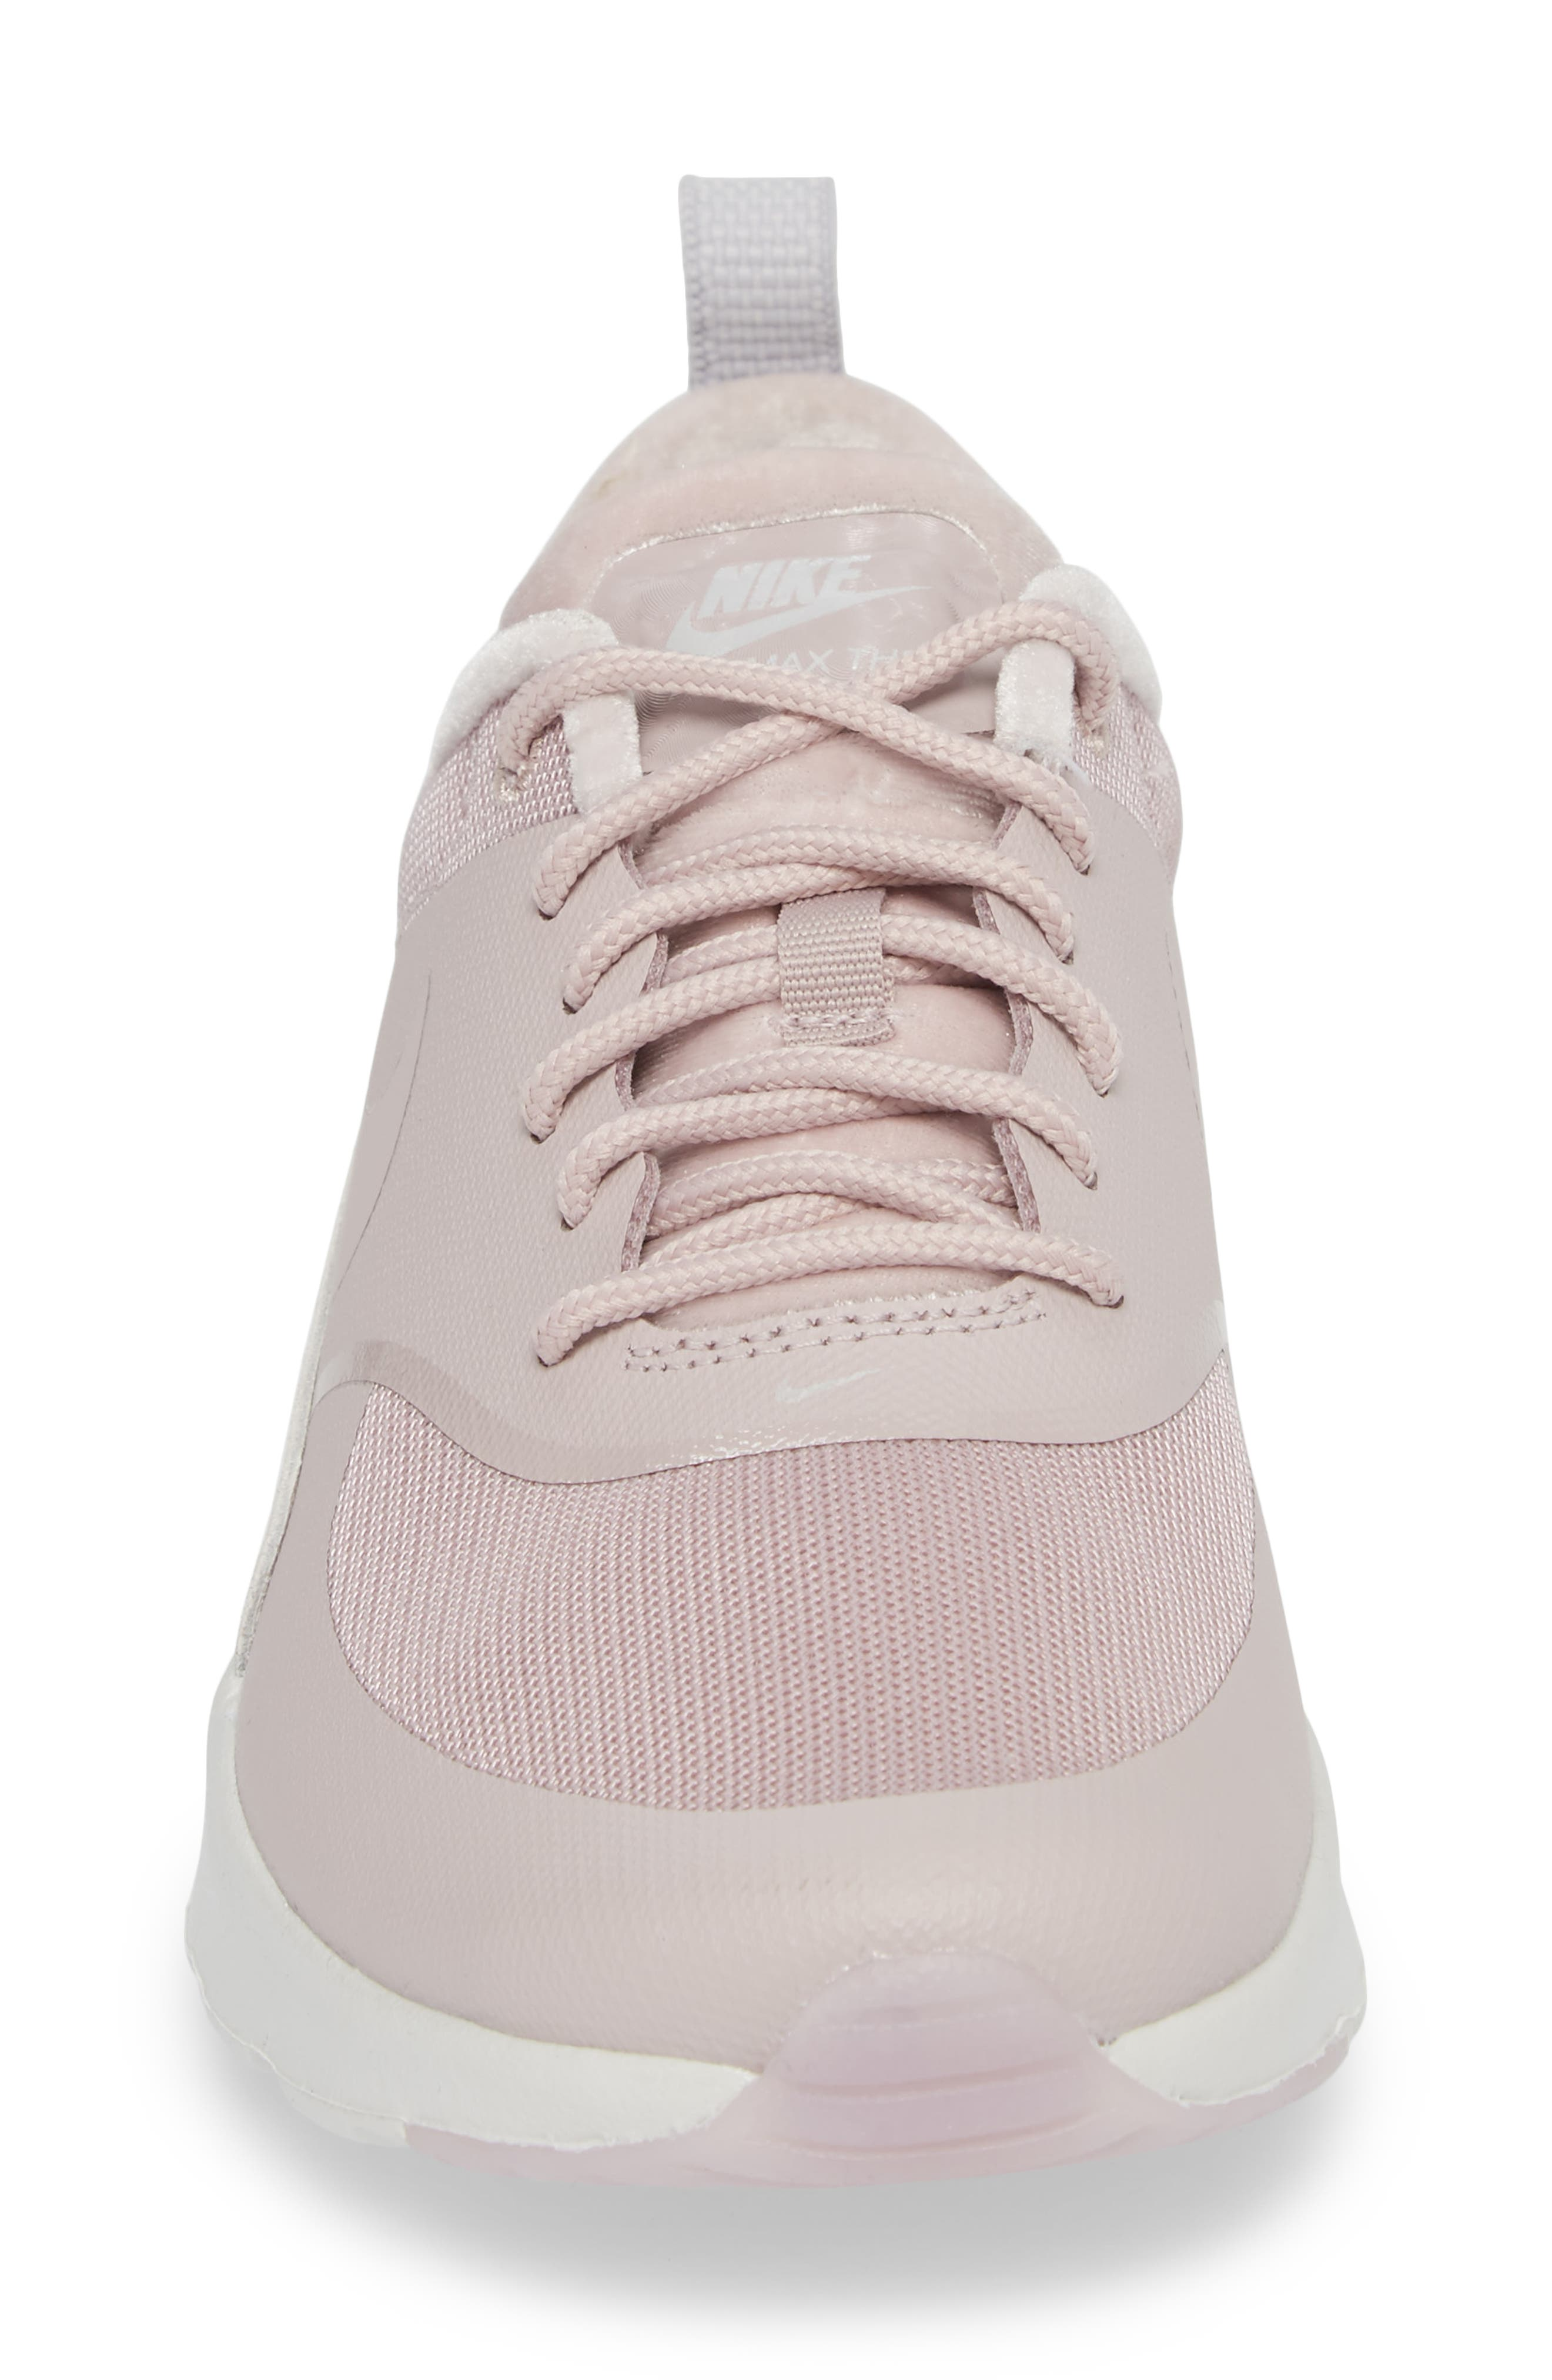 Air Max Thea LX Sneaker,                             Alternate thumbnail 4, color,                             Particle Rose/ Particle Rose